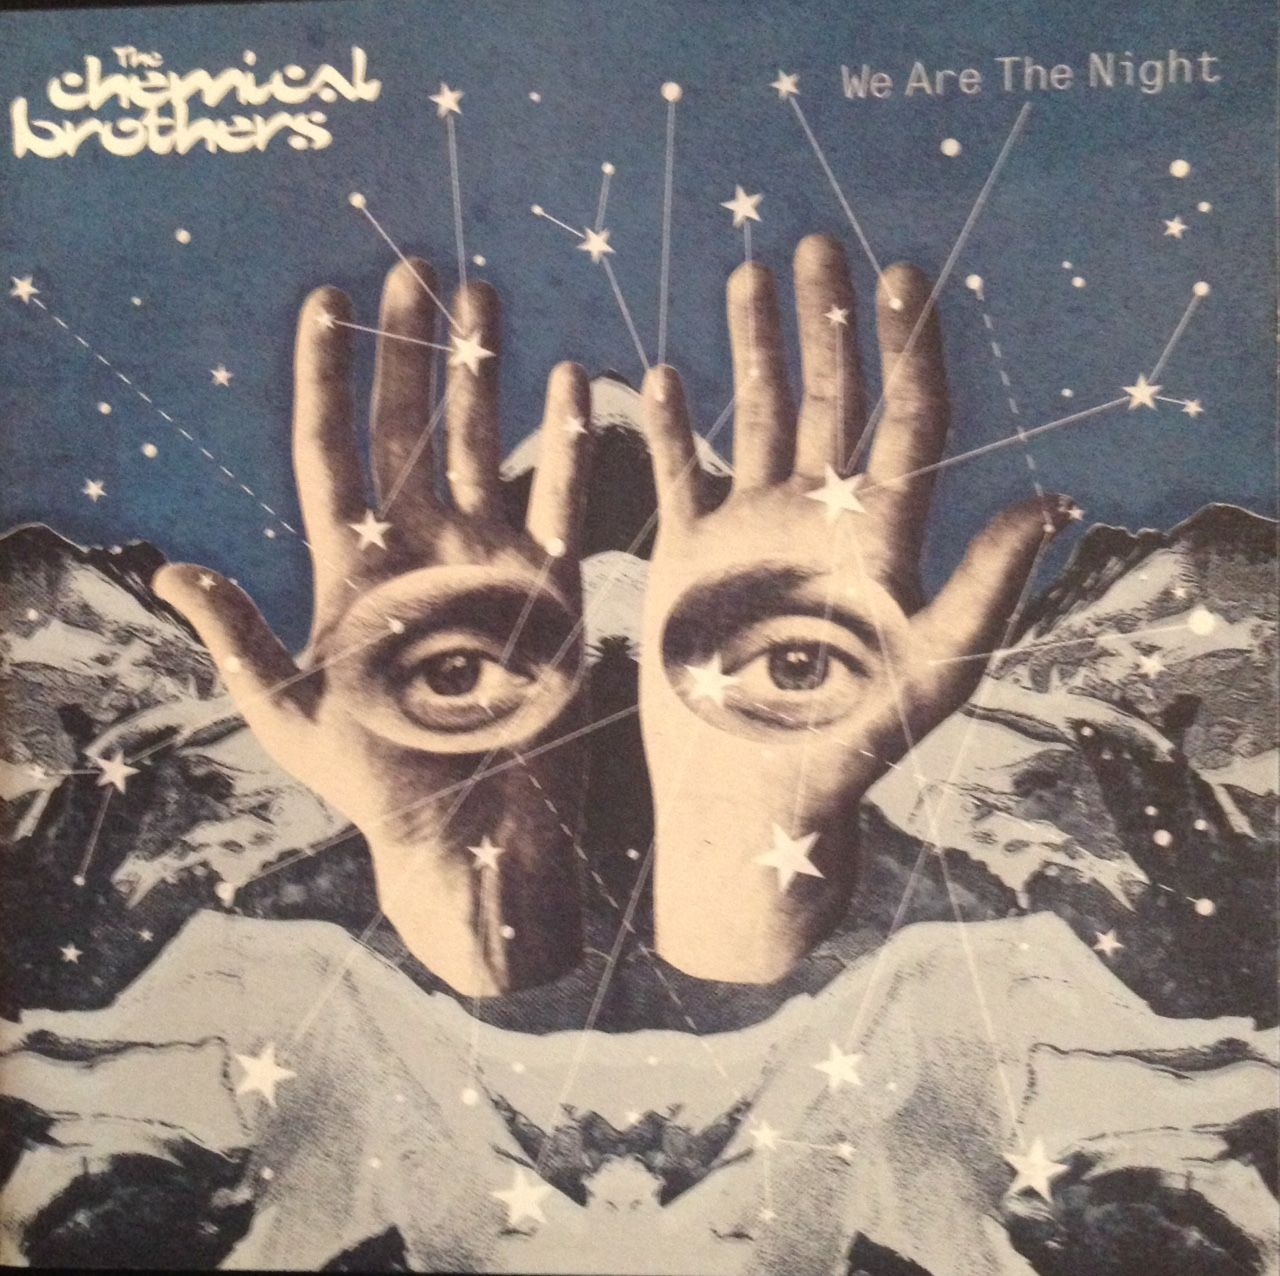 The Chemicals Brothers - We Are The Night